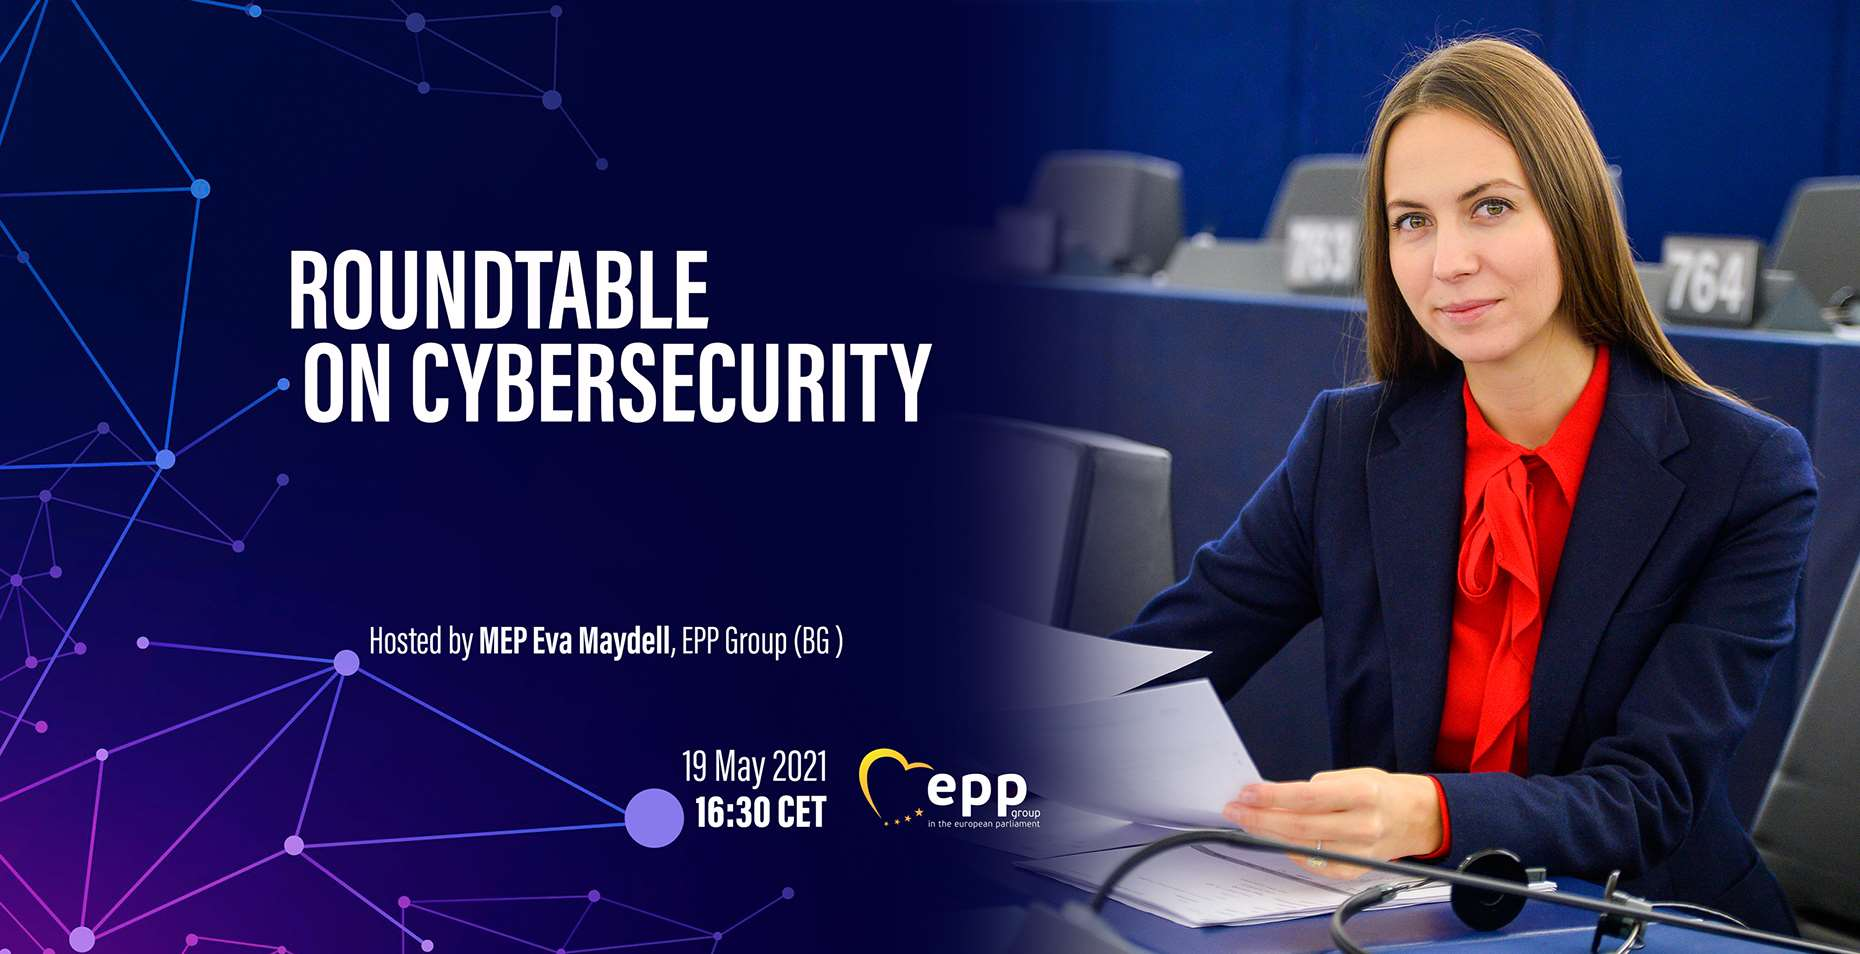 Round Table on Cybersecurity